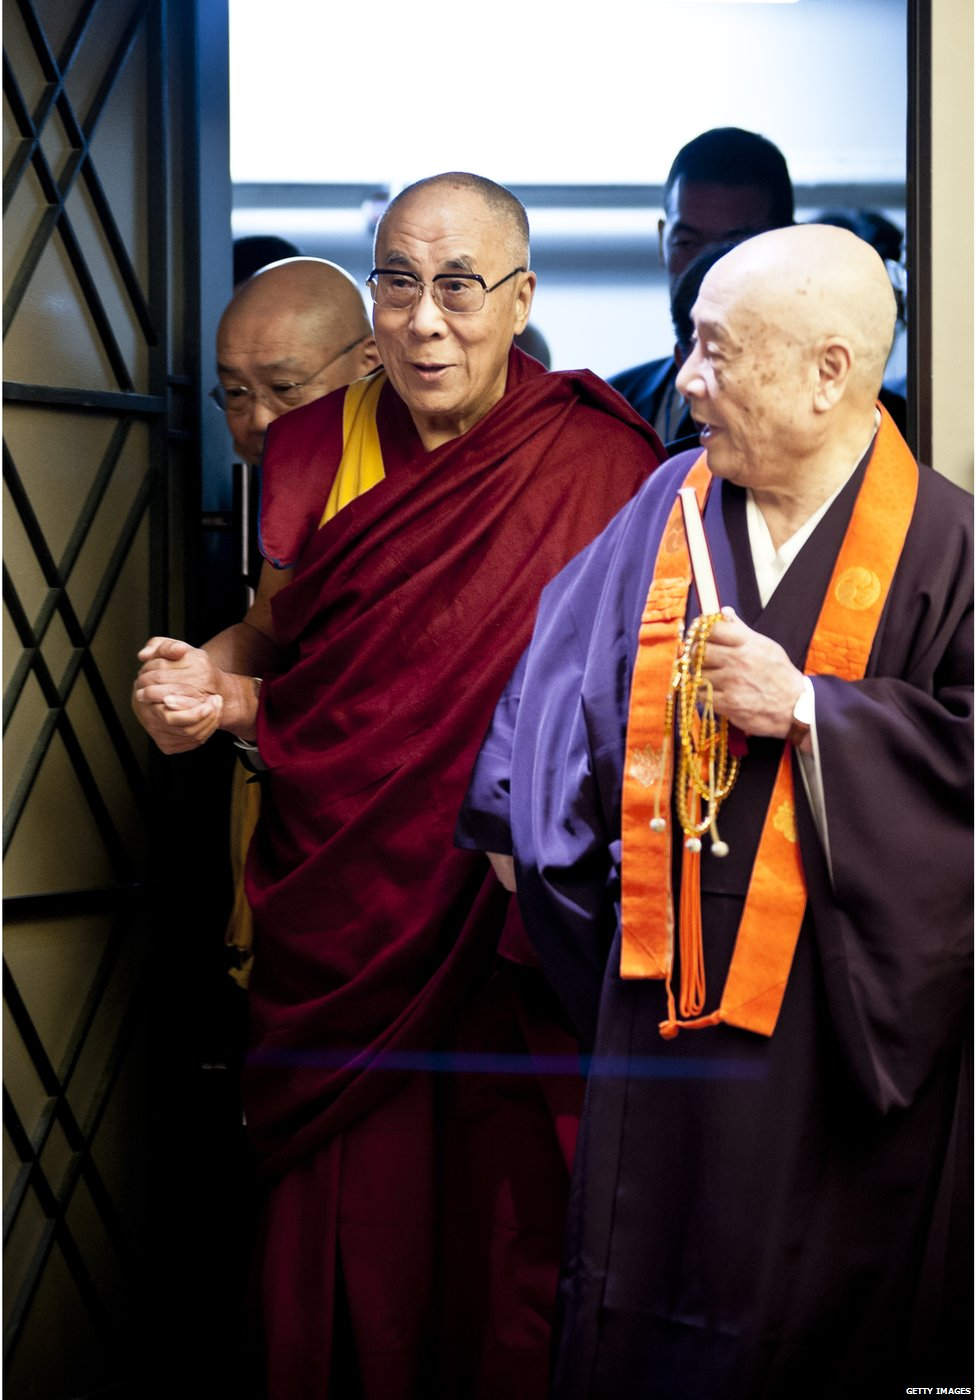 Tibetan spiritual leader the Dalai Lama (L) is introduced to guests during 'Dialogue in Tokyo' at Hotel Okura on 17 November 2013 in Tokyo, Japan